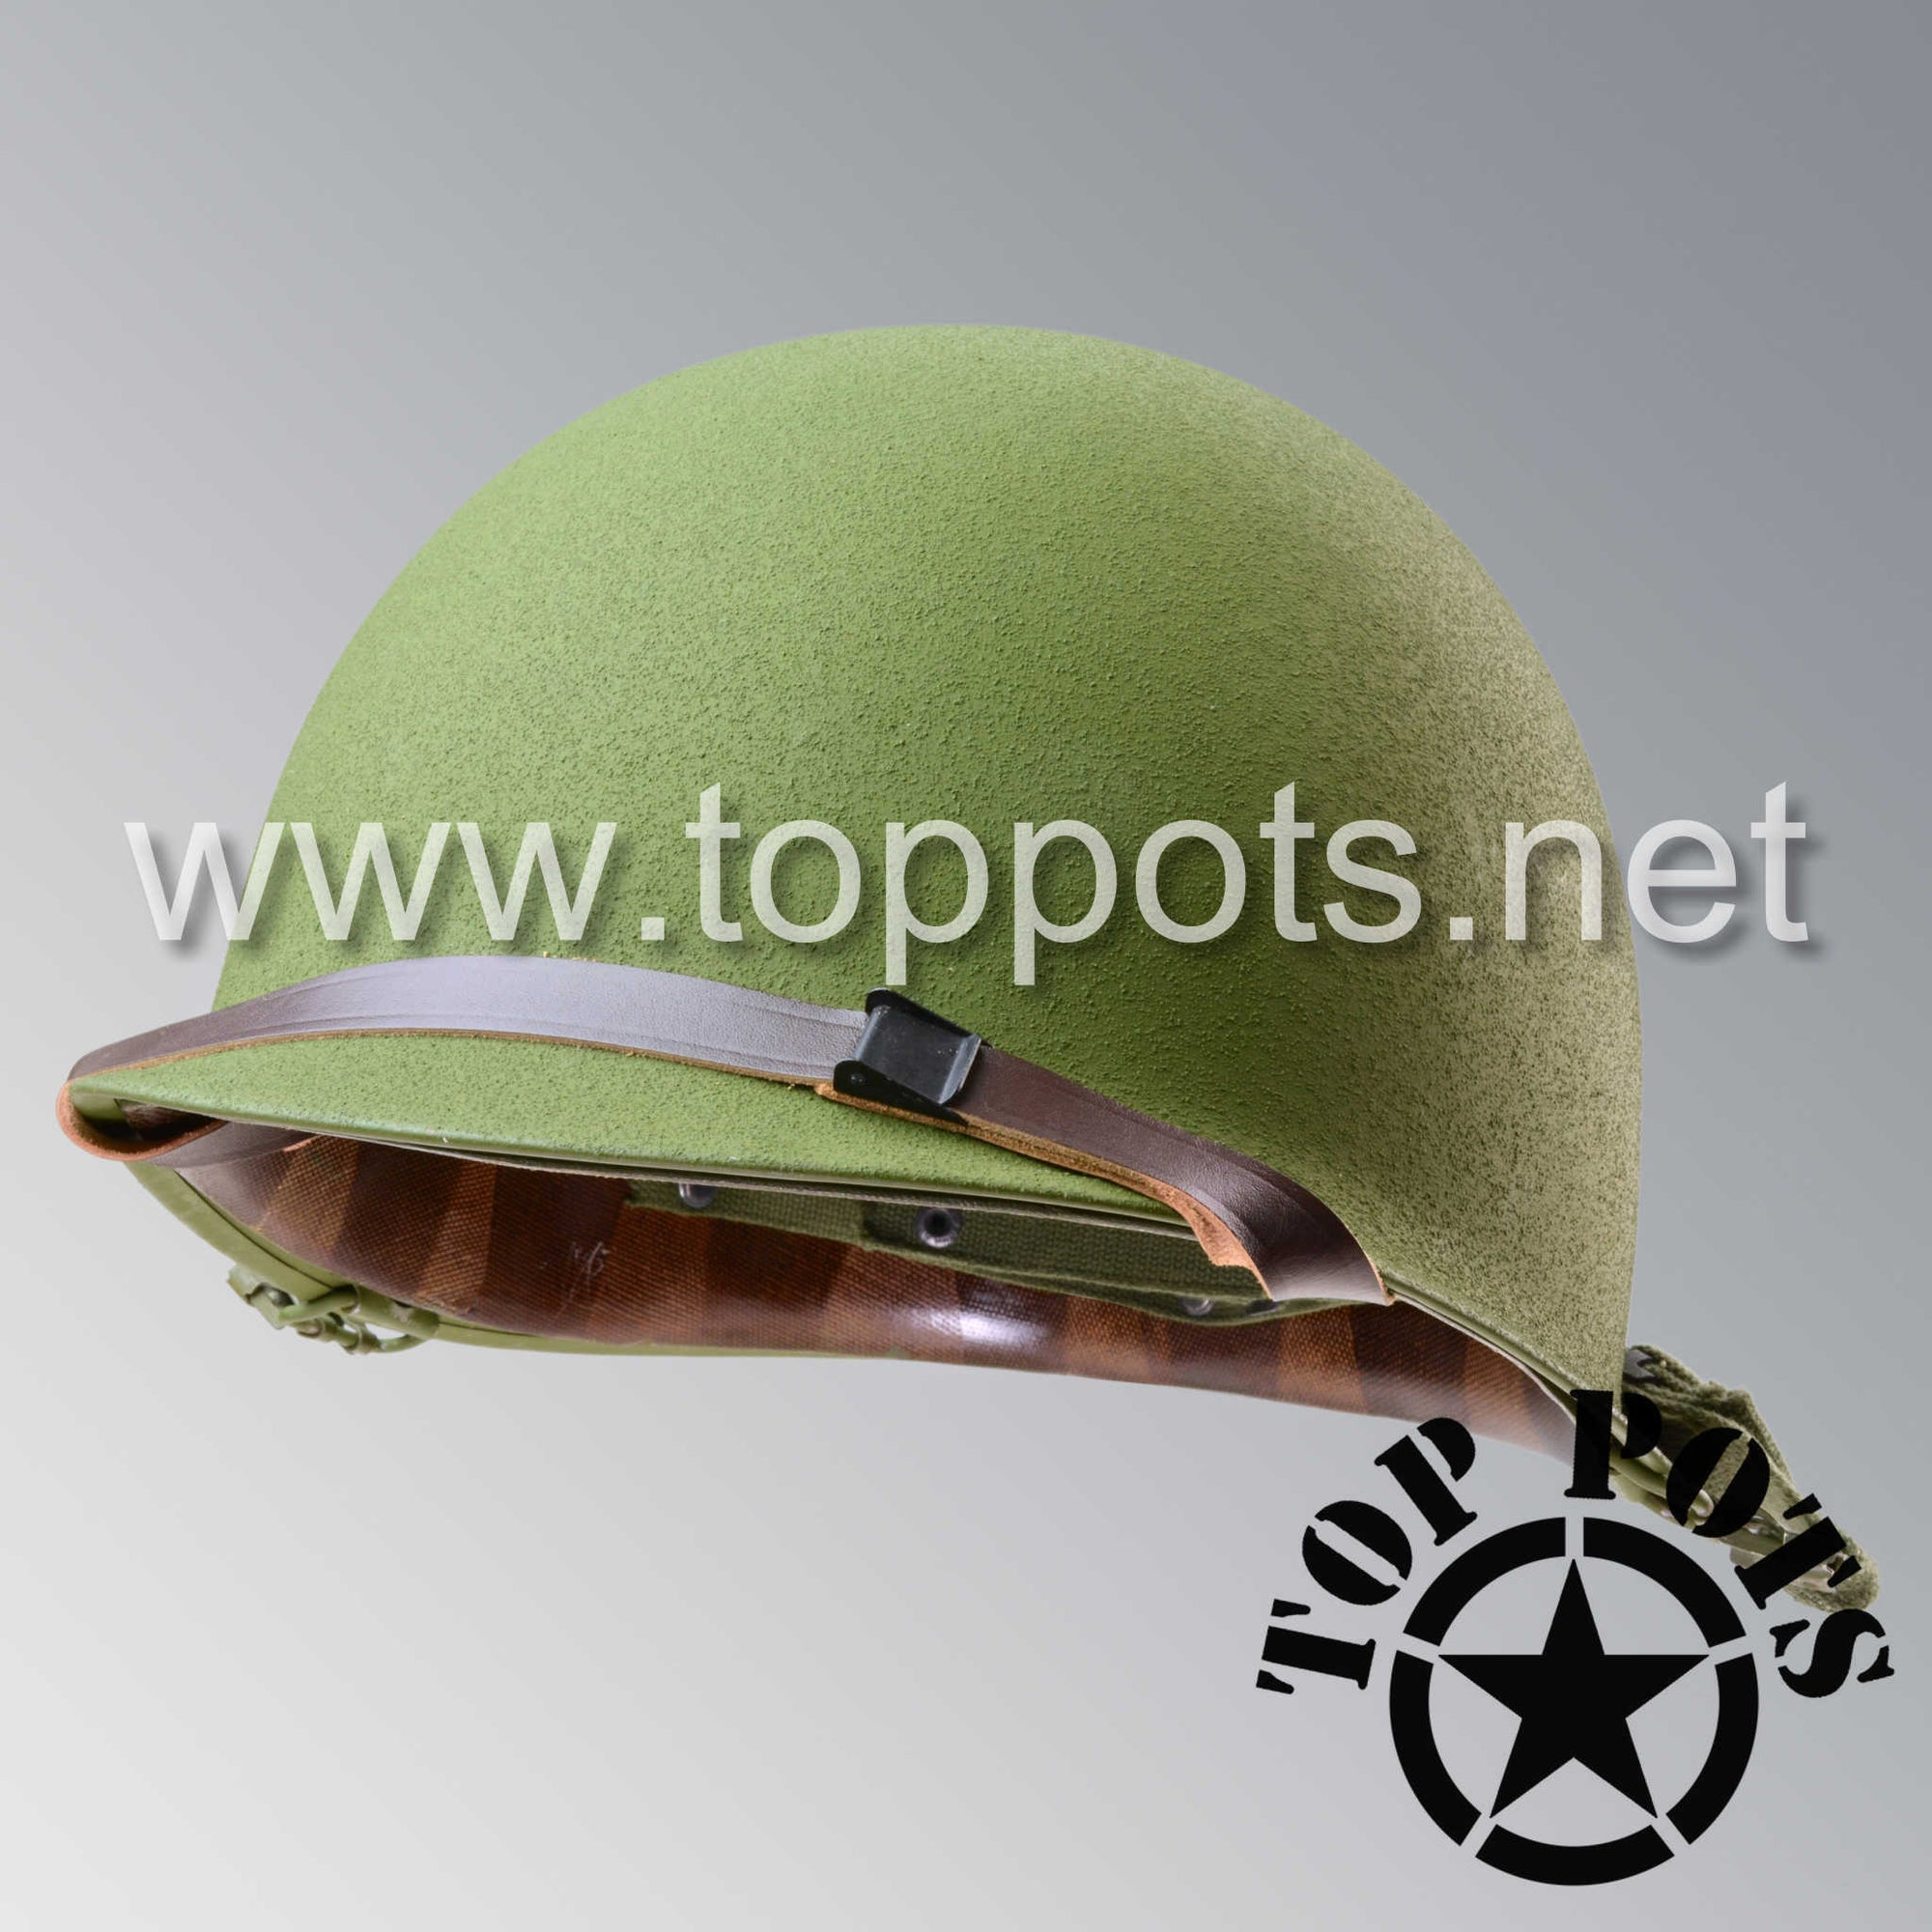 Image 1 of Vietnam War US Army Original M1 Infantry Helmet Swivel Bale Shell and P55 Liner with Leather Liner Chinstrap